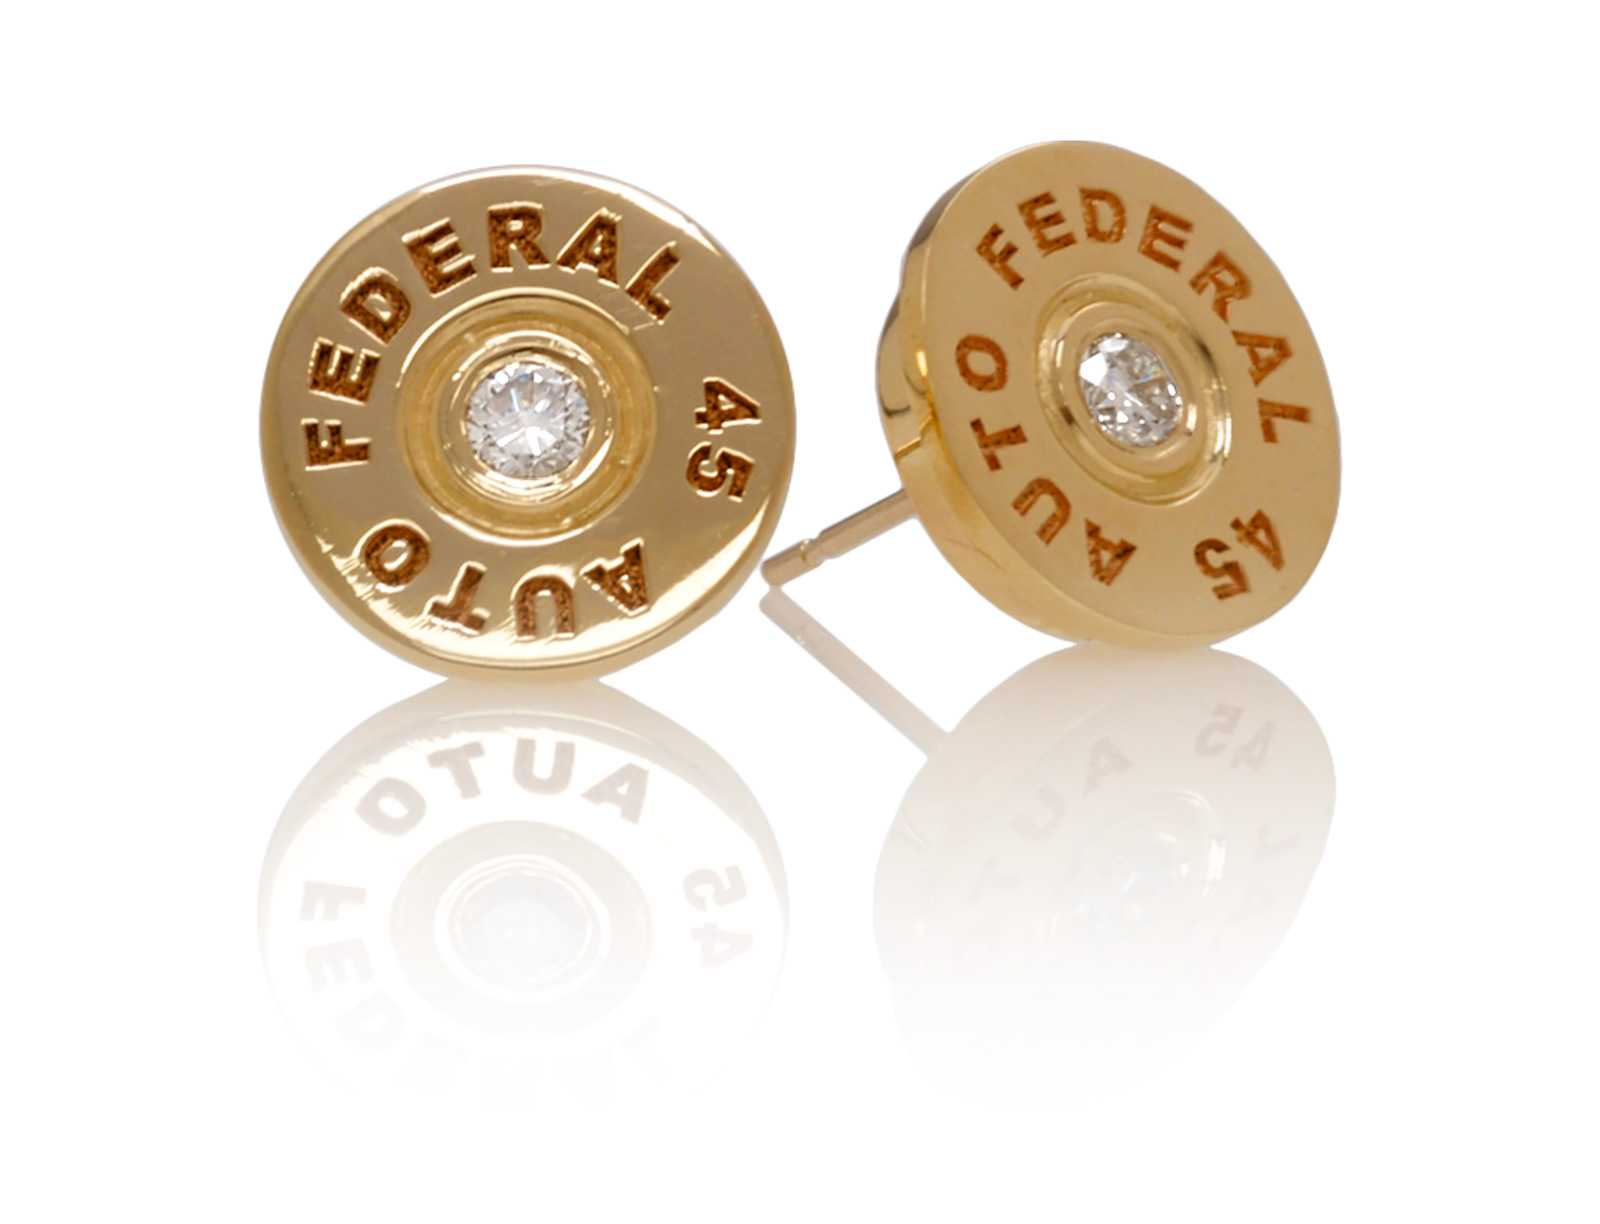 EAR203YG .45 Bullet Earrings in 14kt. Yellow Gold with White Diamonds